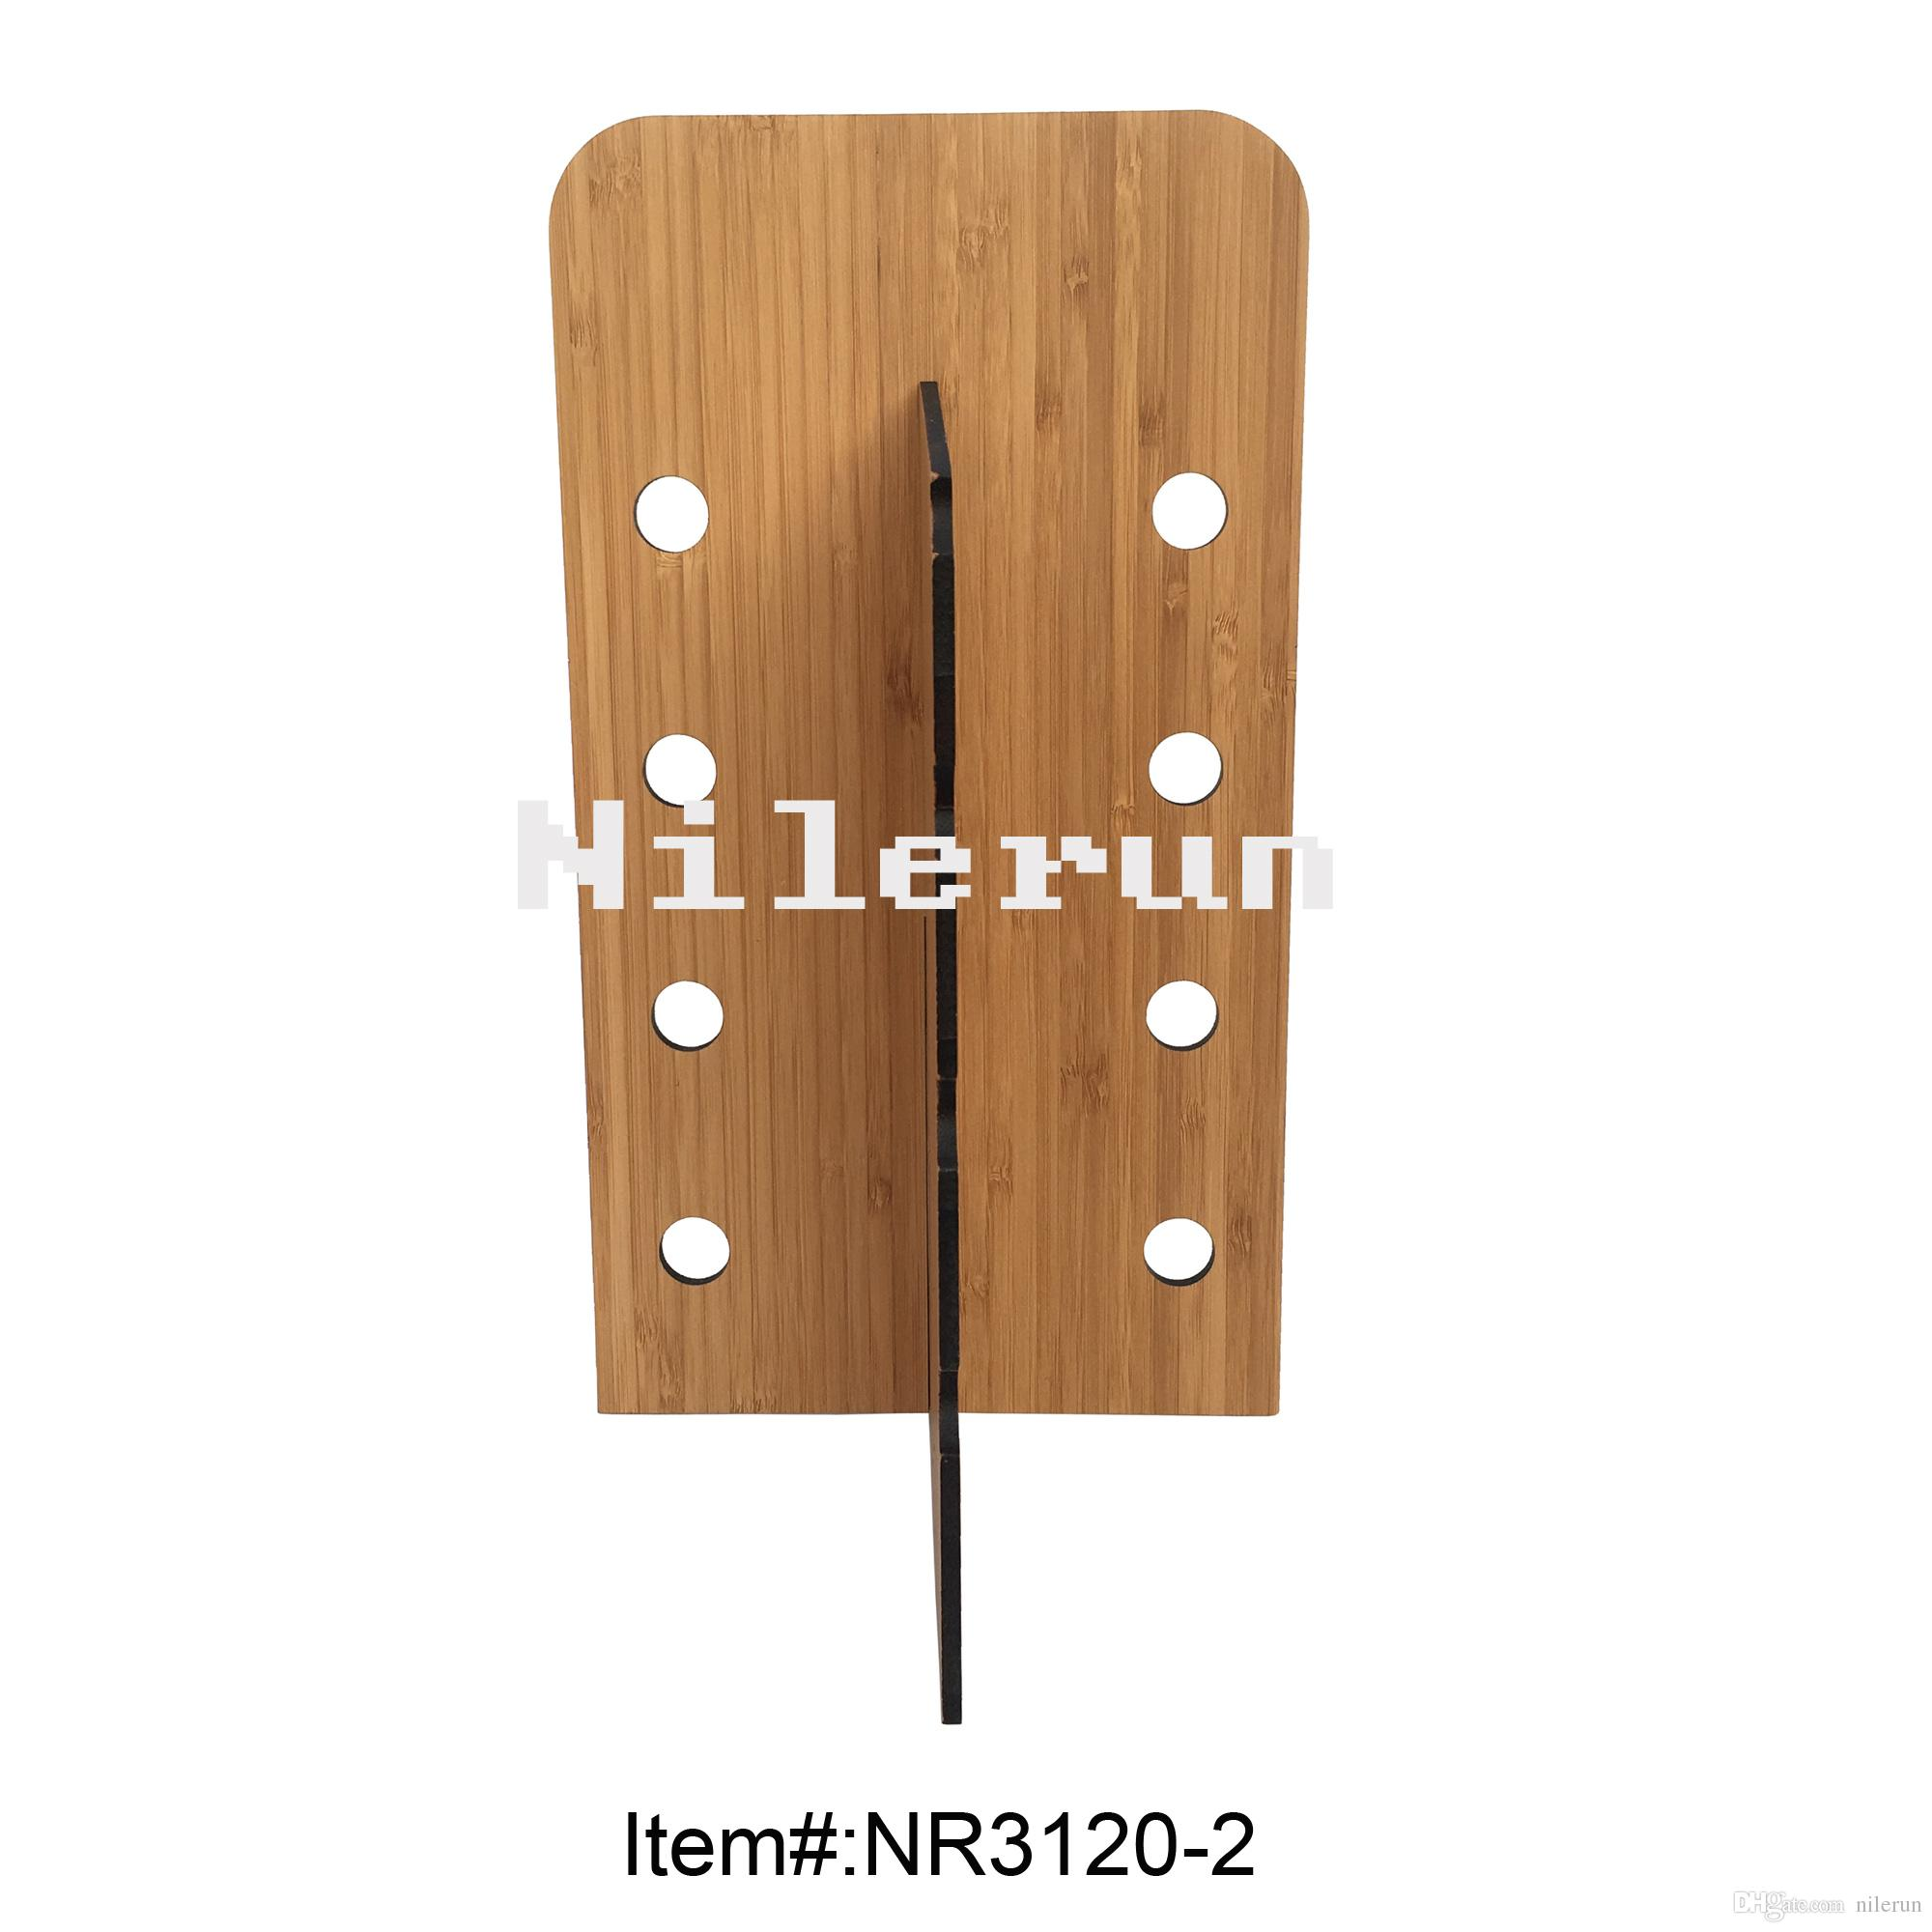 2019 Hot Selling Eyewear Shop KD Bamboo 8 Holes 4 Sunglasses Display Stand  In Large Stock For Wholesale From Nilerun 81f506e35aeb